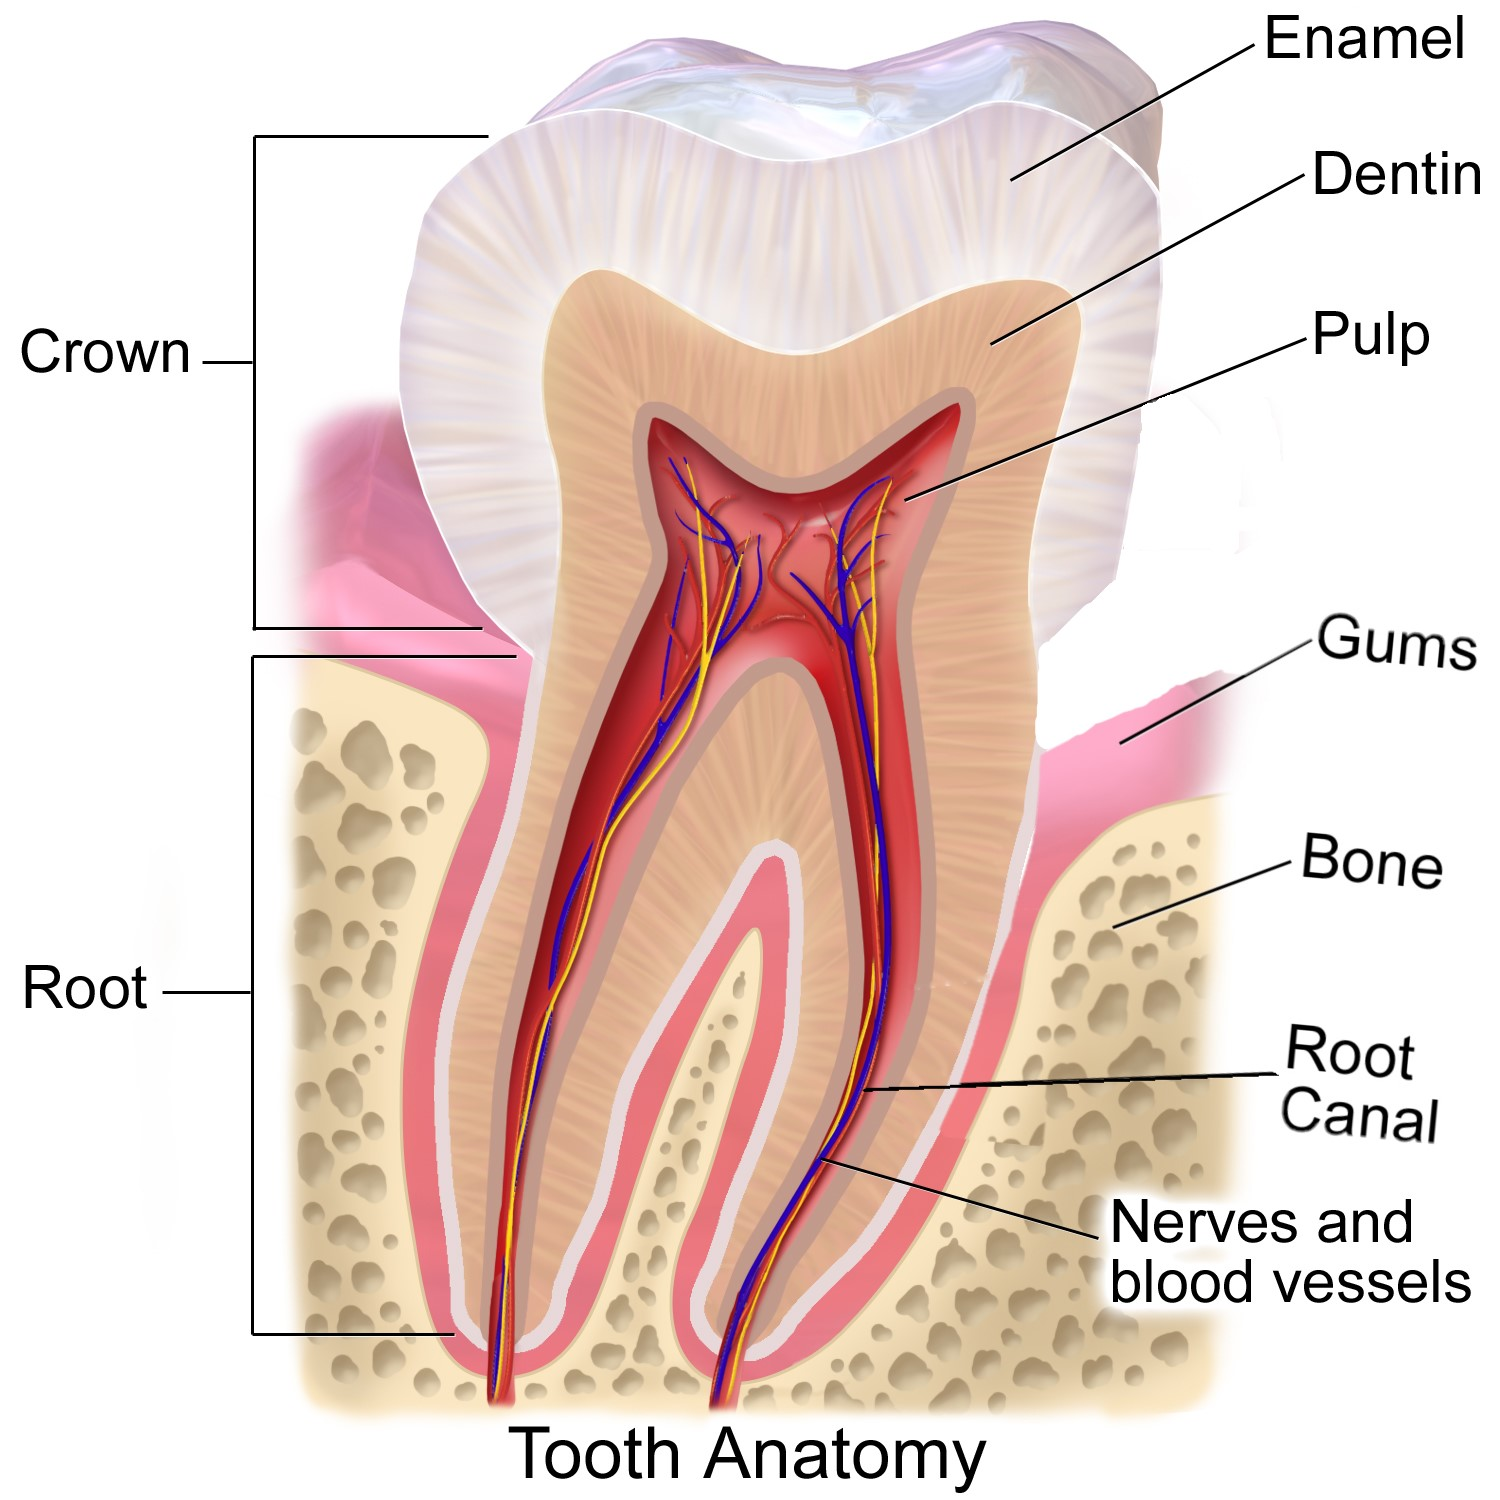 Tooth Anatomy - Dentine Exposure